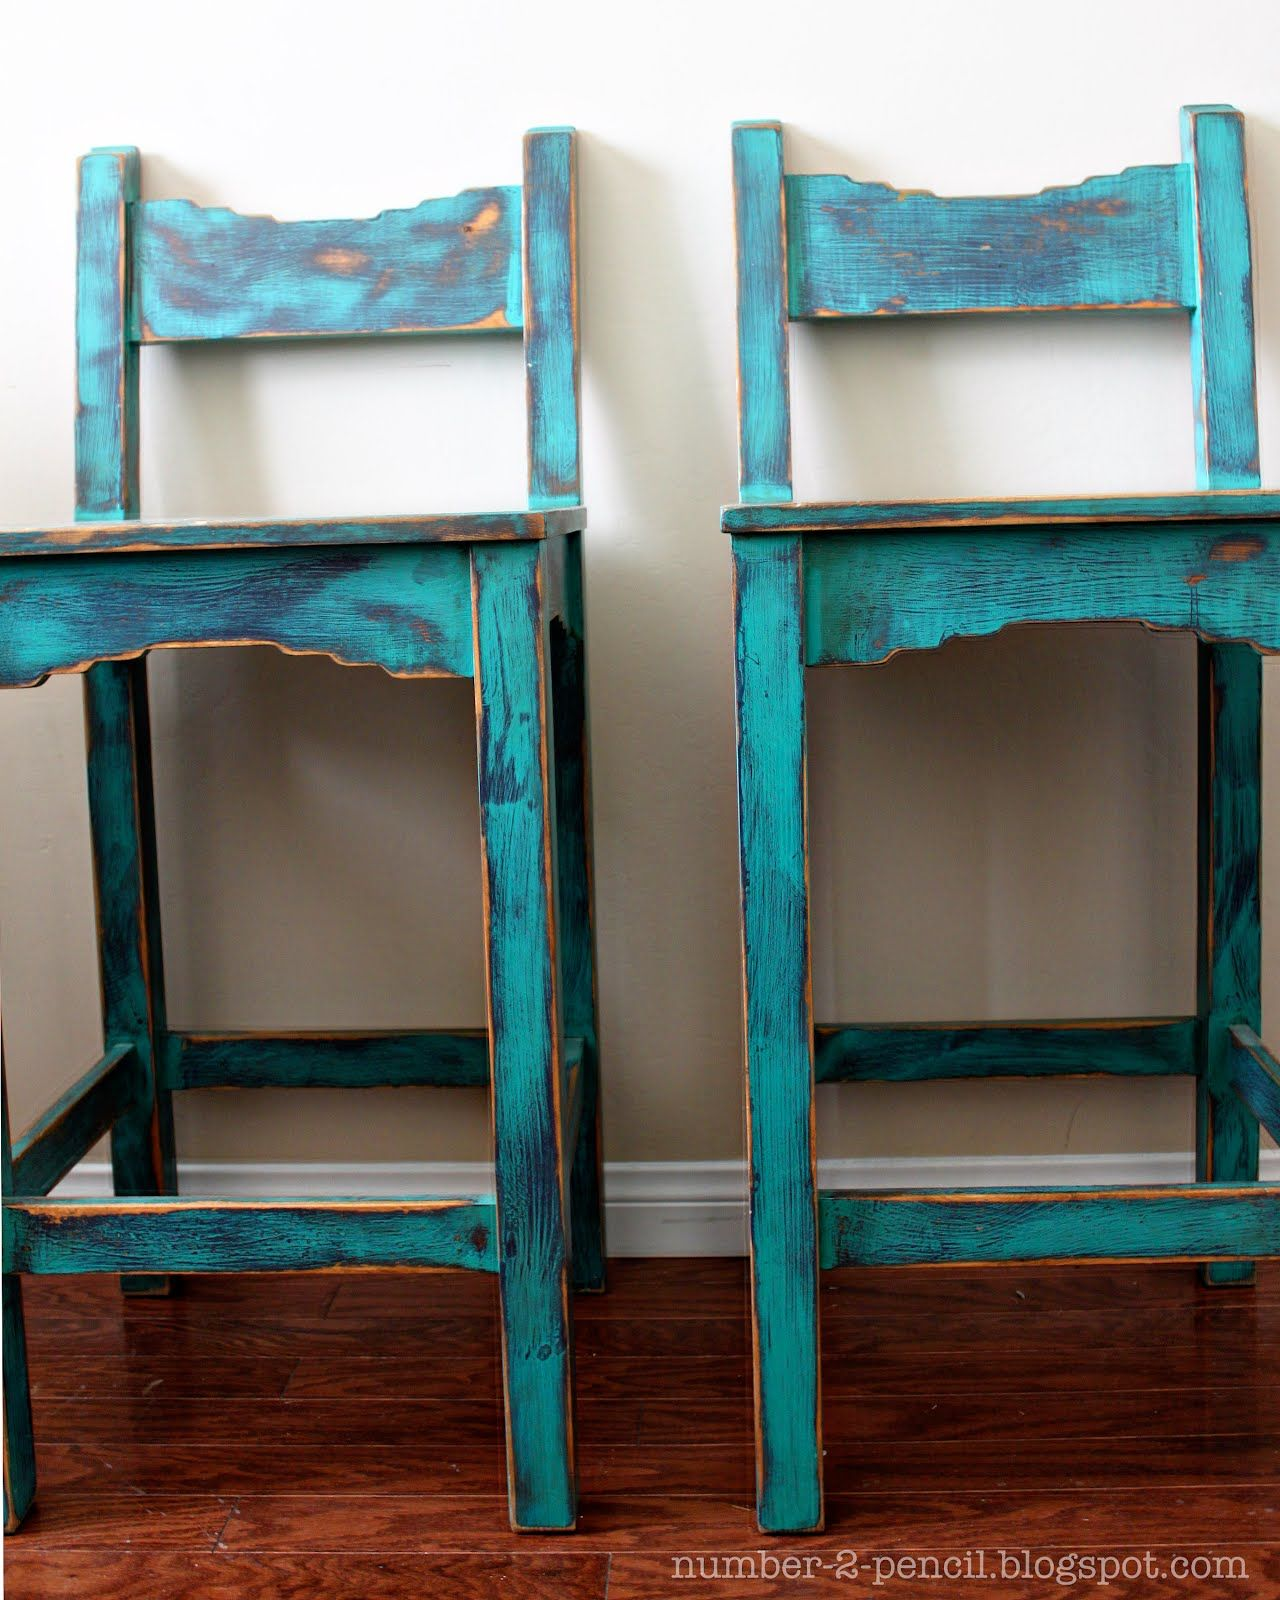 2 pencil vintage turquoise southwestern bar stools ♥ these